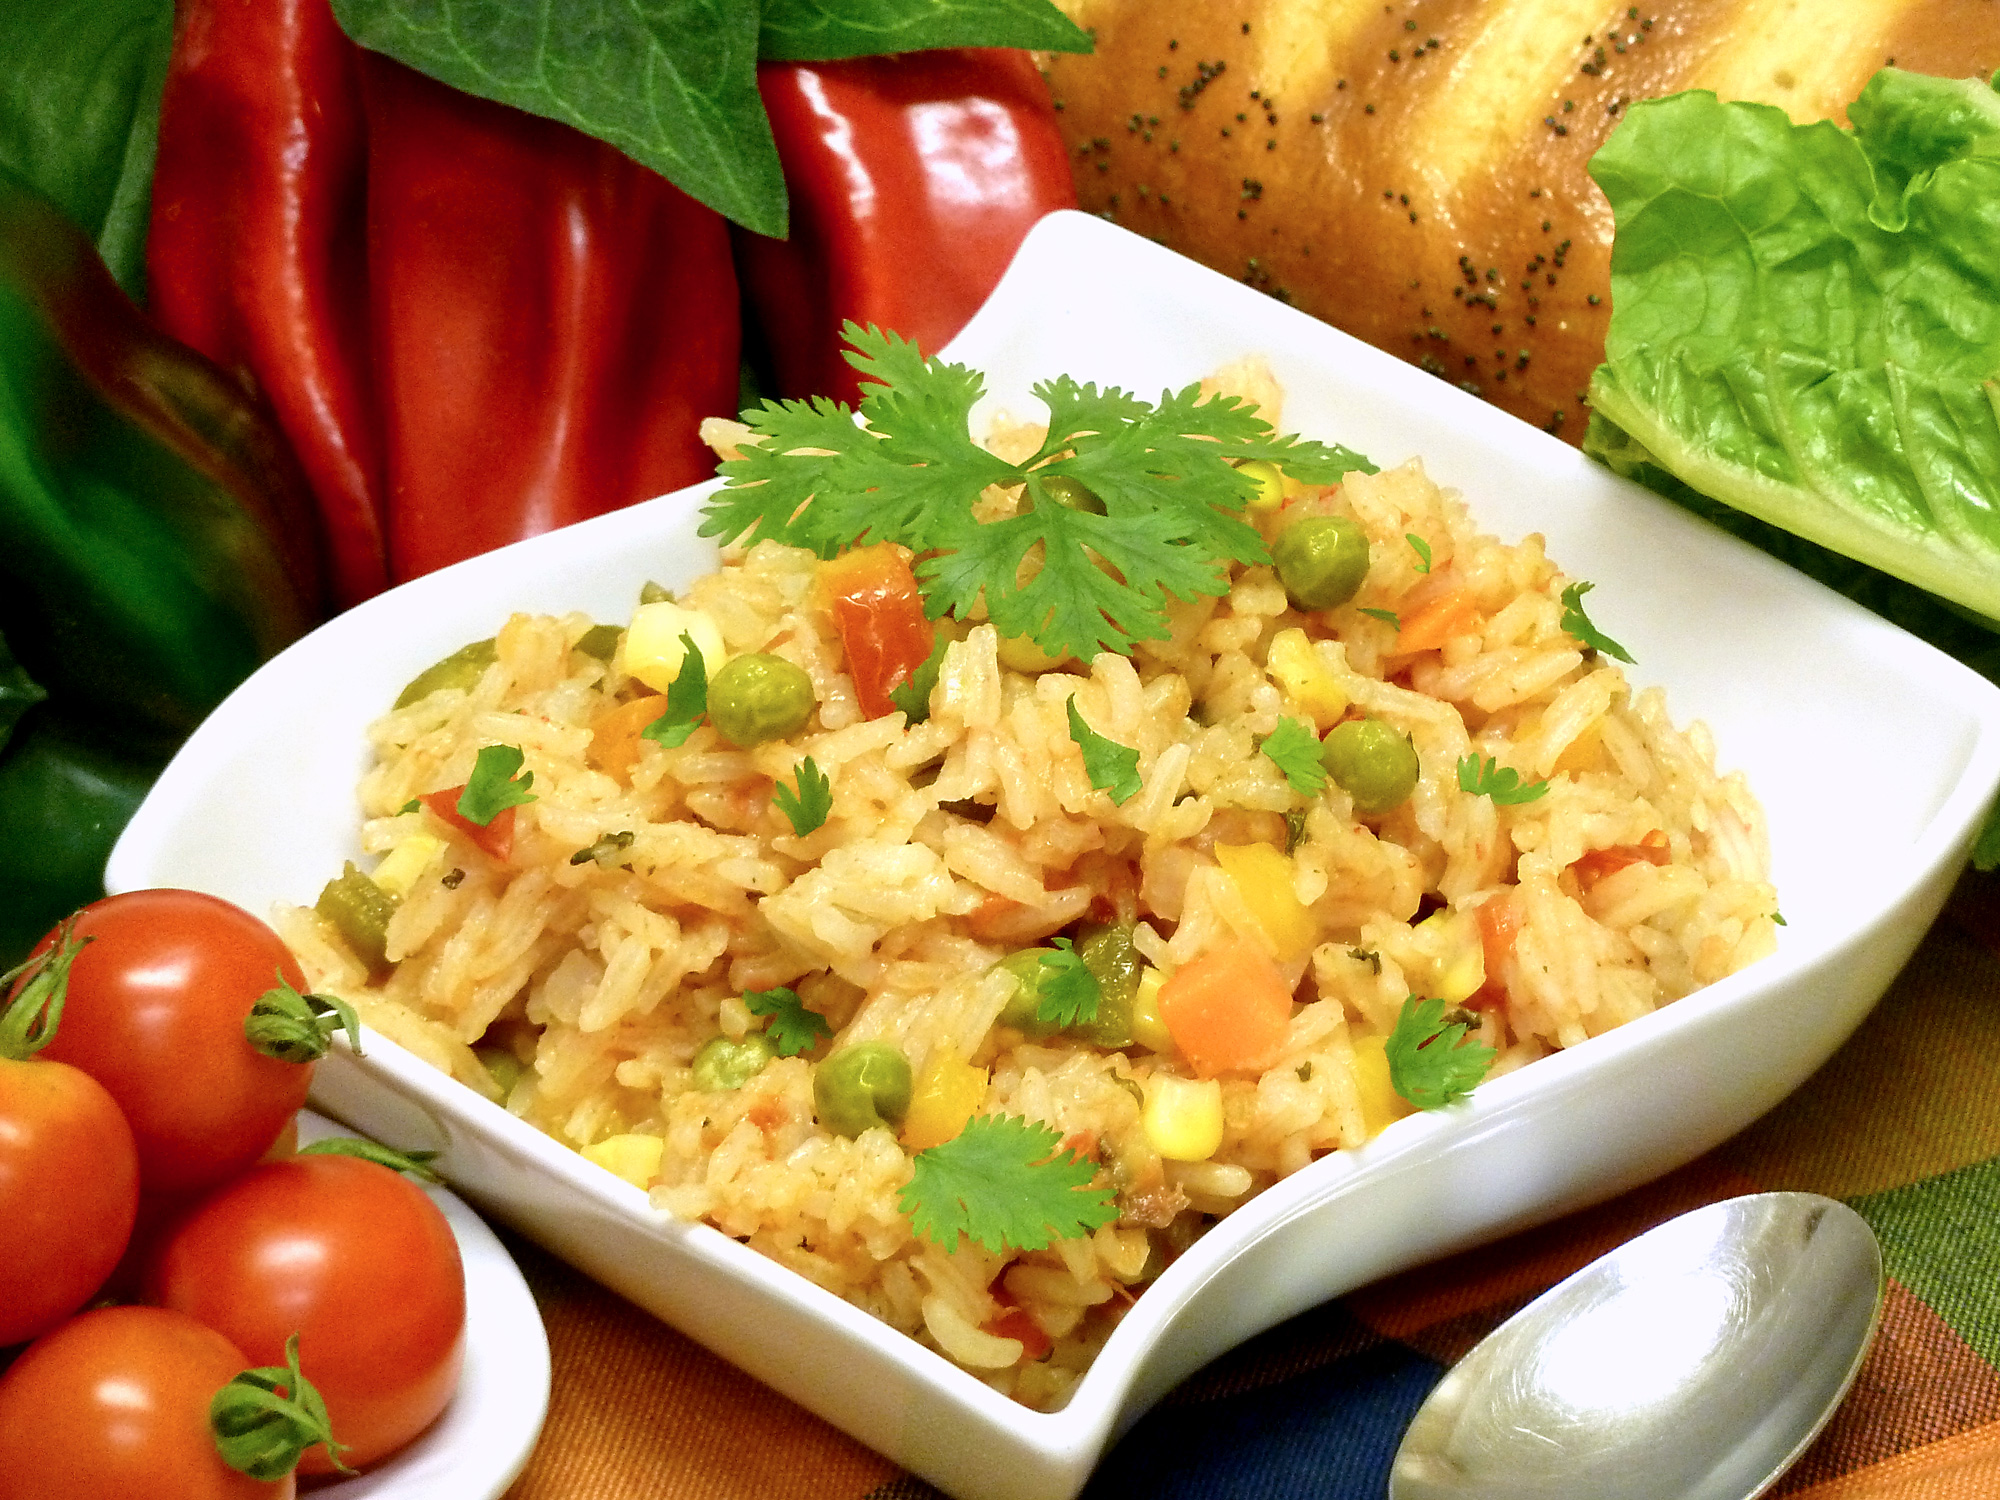 Salsa gives spanish rice with vegetables a slightly spicy punch of flavor.